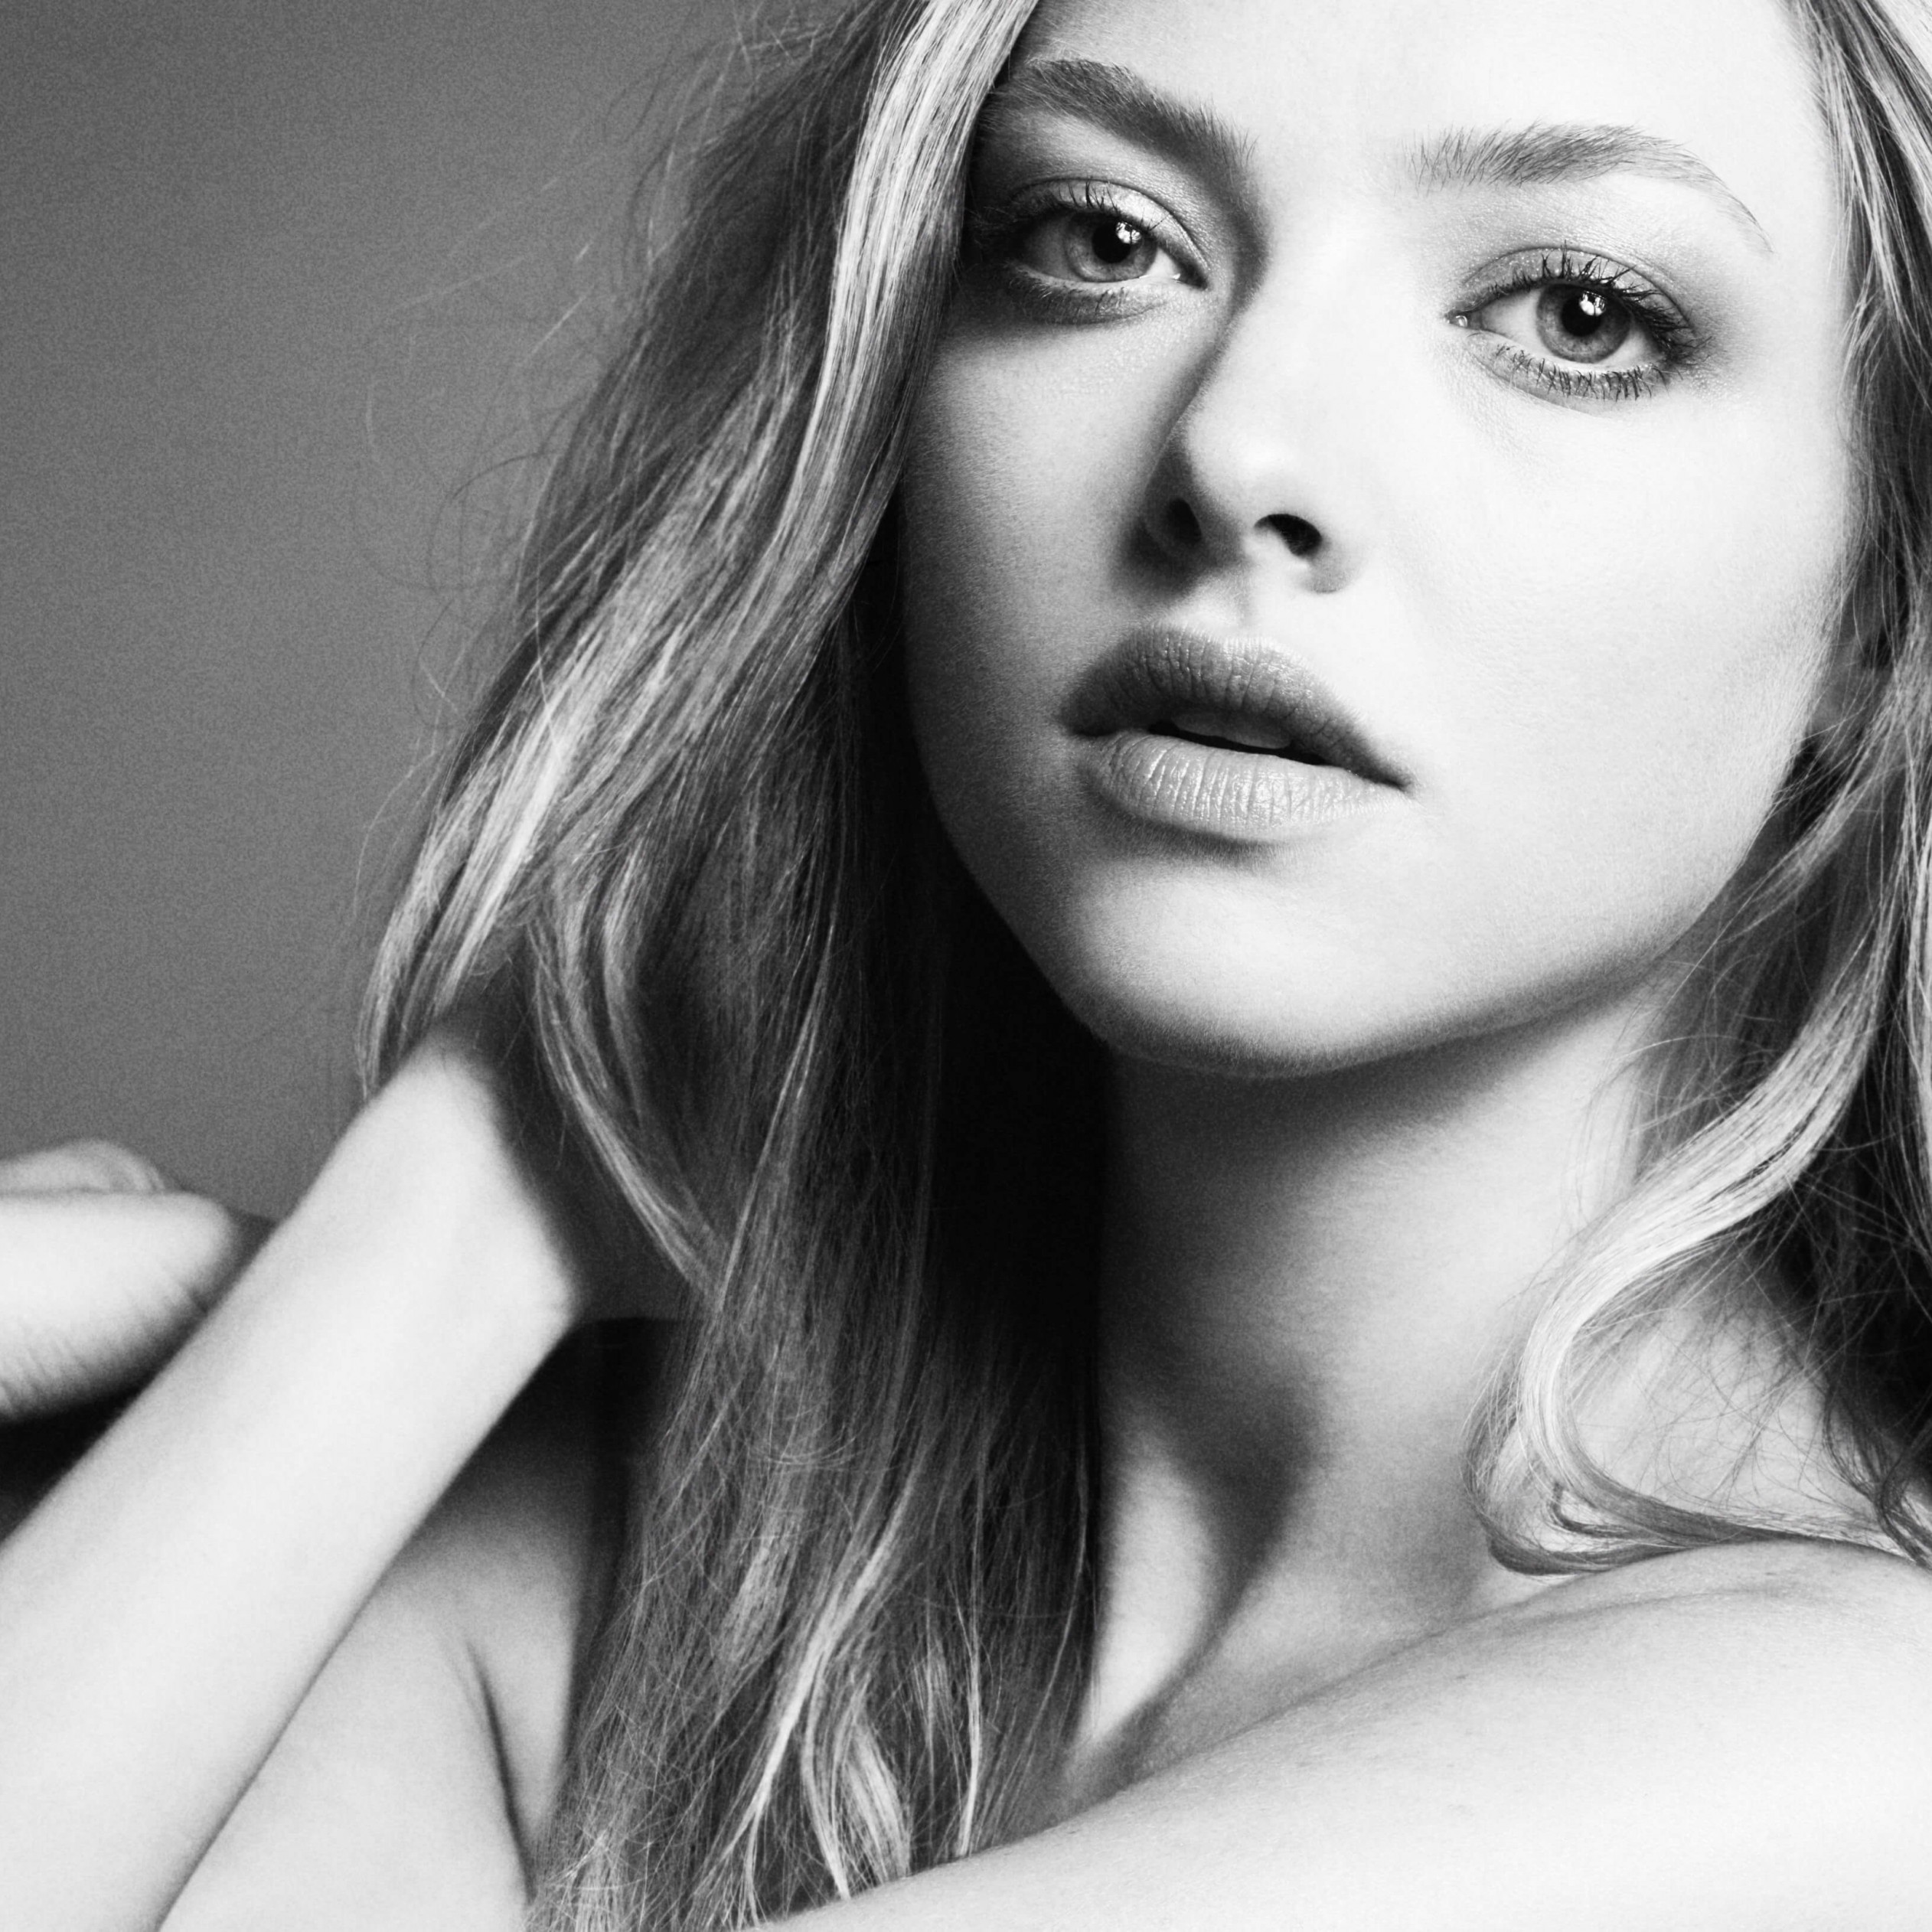 Amanda Seyfried Black & White Portrait Wallpaper for Apple iPad Air